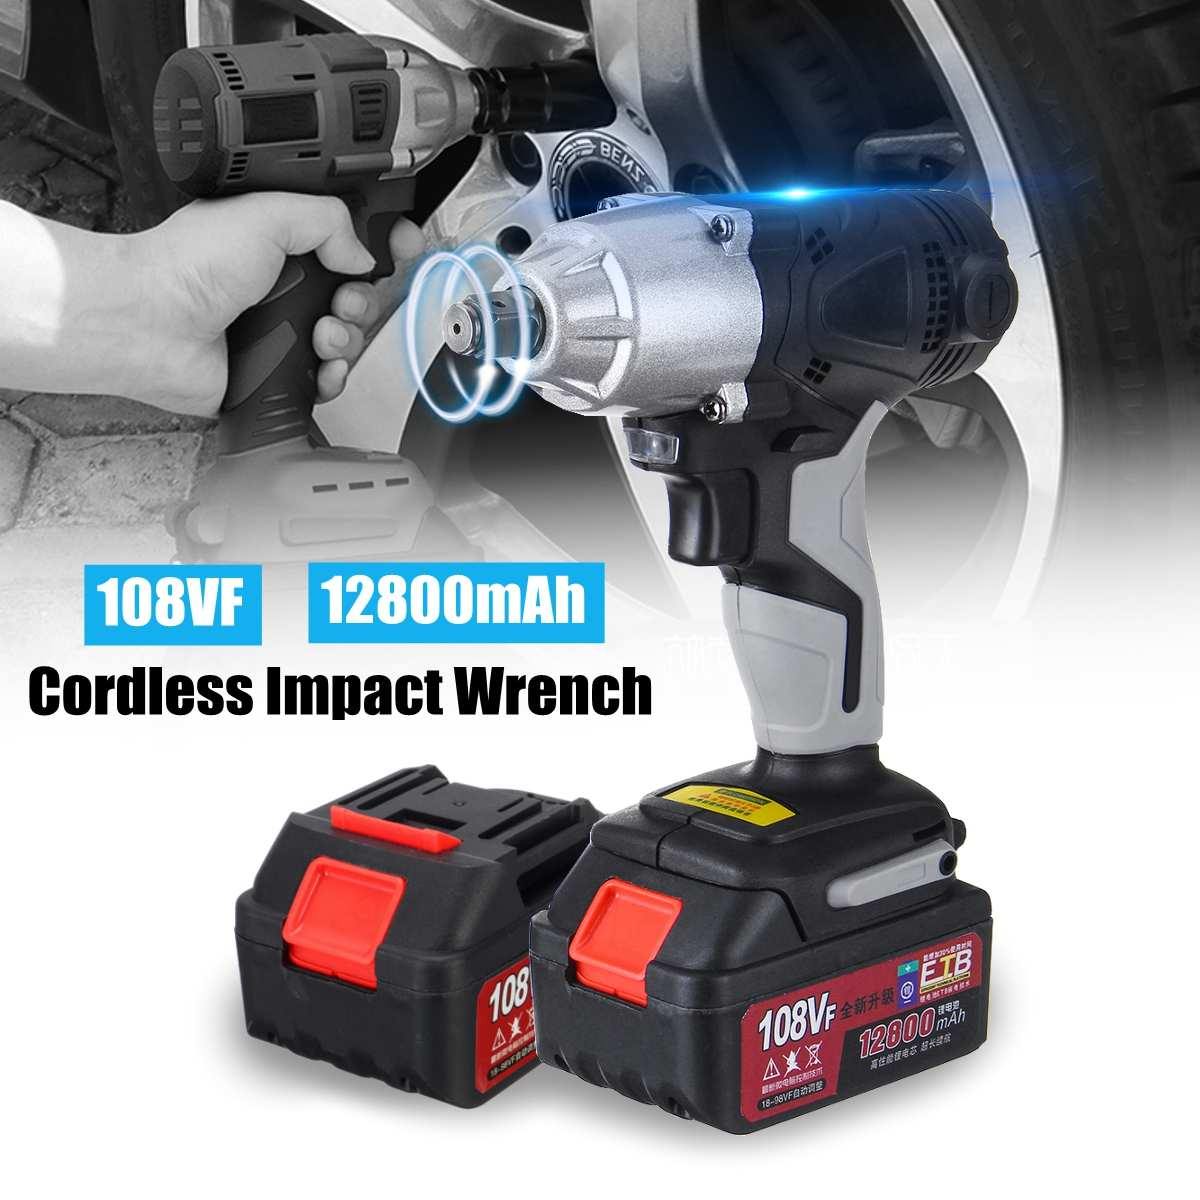 108VF 12800mAh Cordless Electric Impact Wrench Drill 1/2'' Driver 320Nm Driver Kit W/ Lithium-Ion Battery